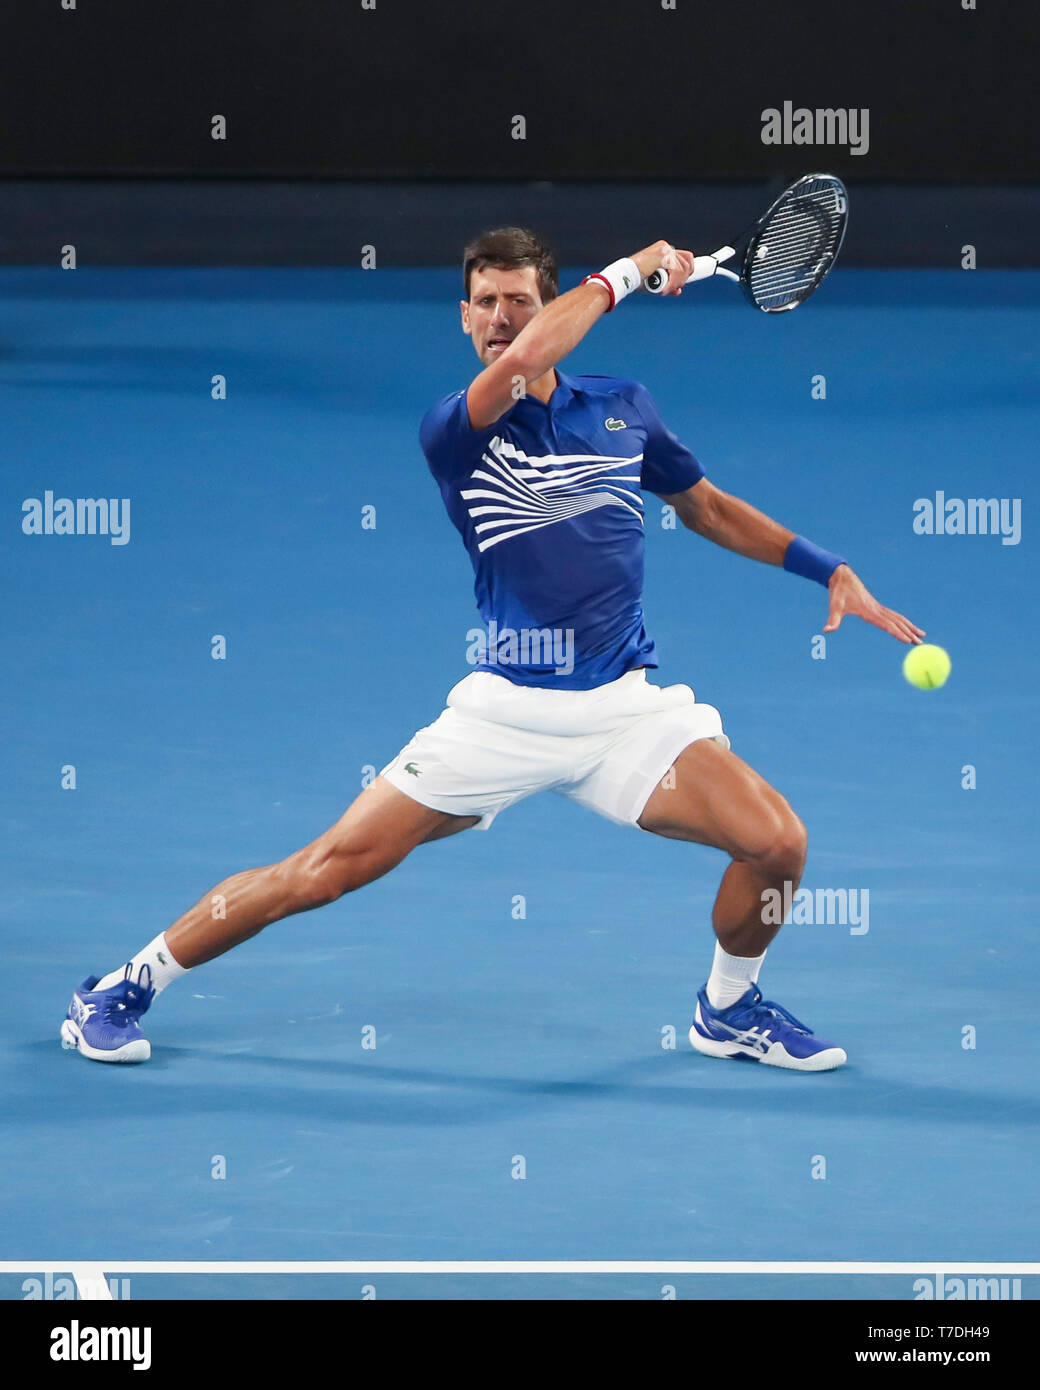 Djokovic Forehand High Resolution Stock Photography And Images Alamy